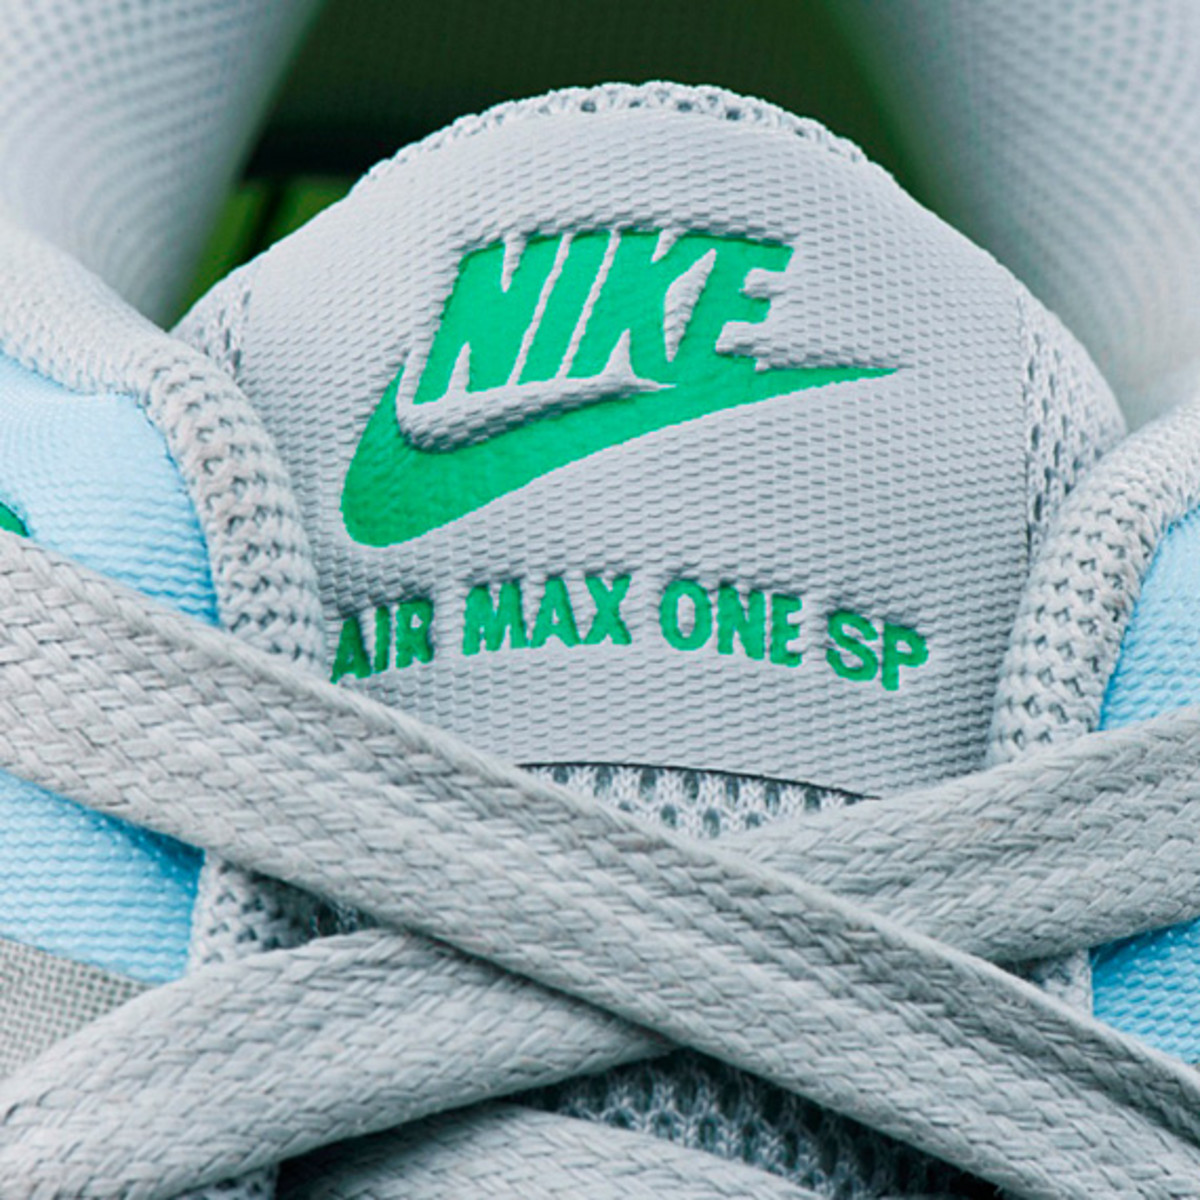 clot-x-nike-air-max-1-sp-detailed-look-06